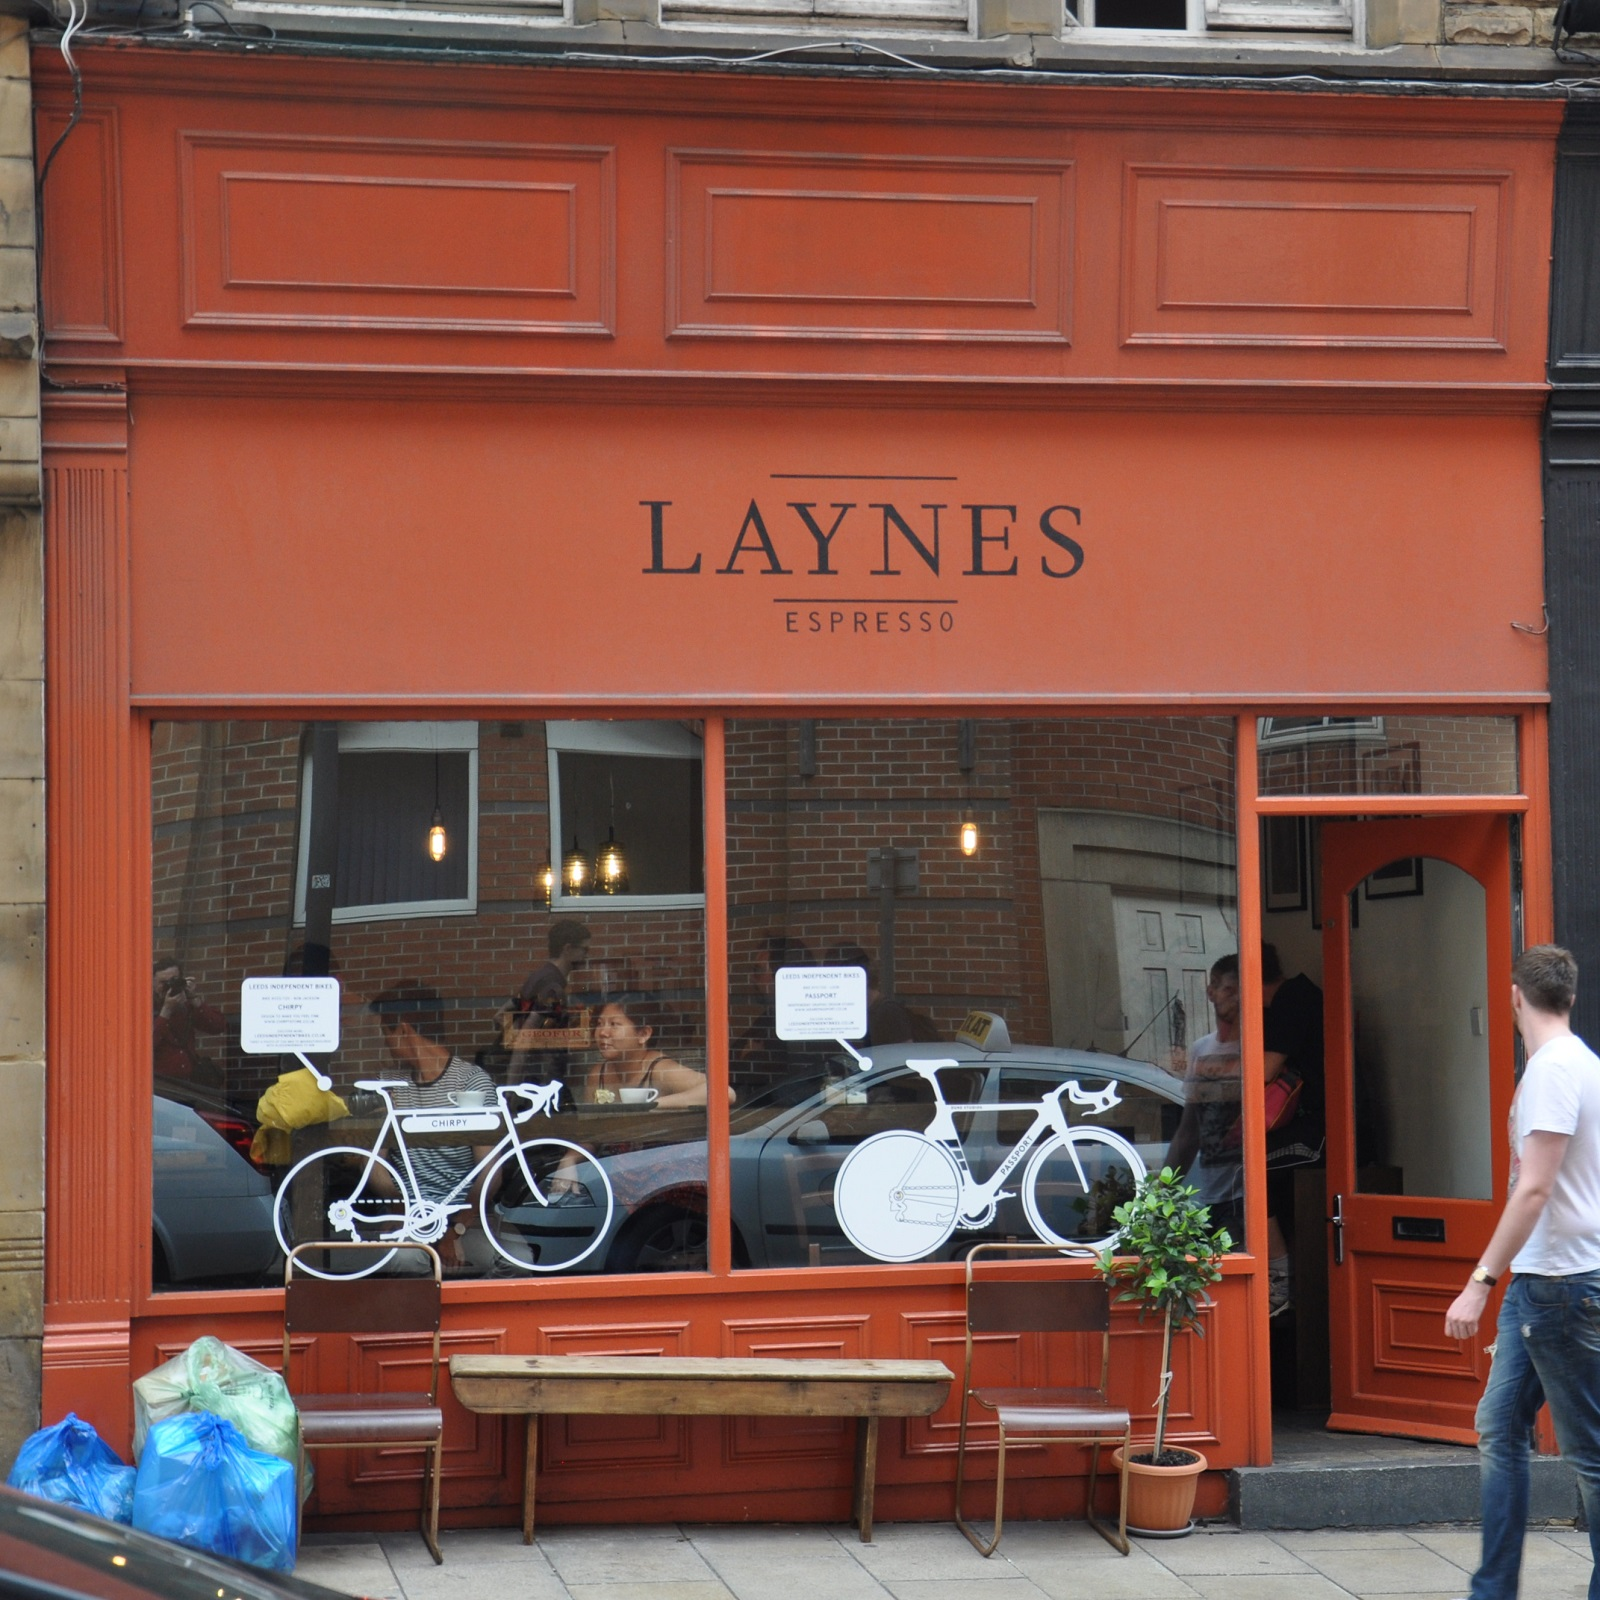 The original facade of Laynes Espresso on New Station Street, Leeds, before its expansion.